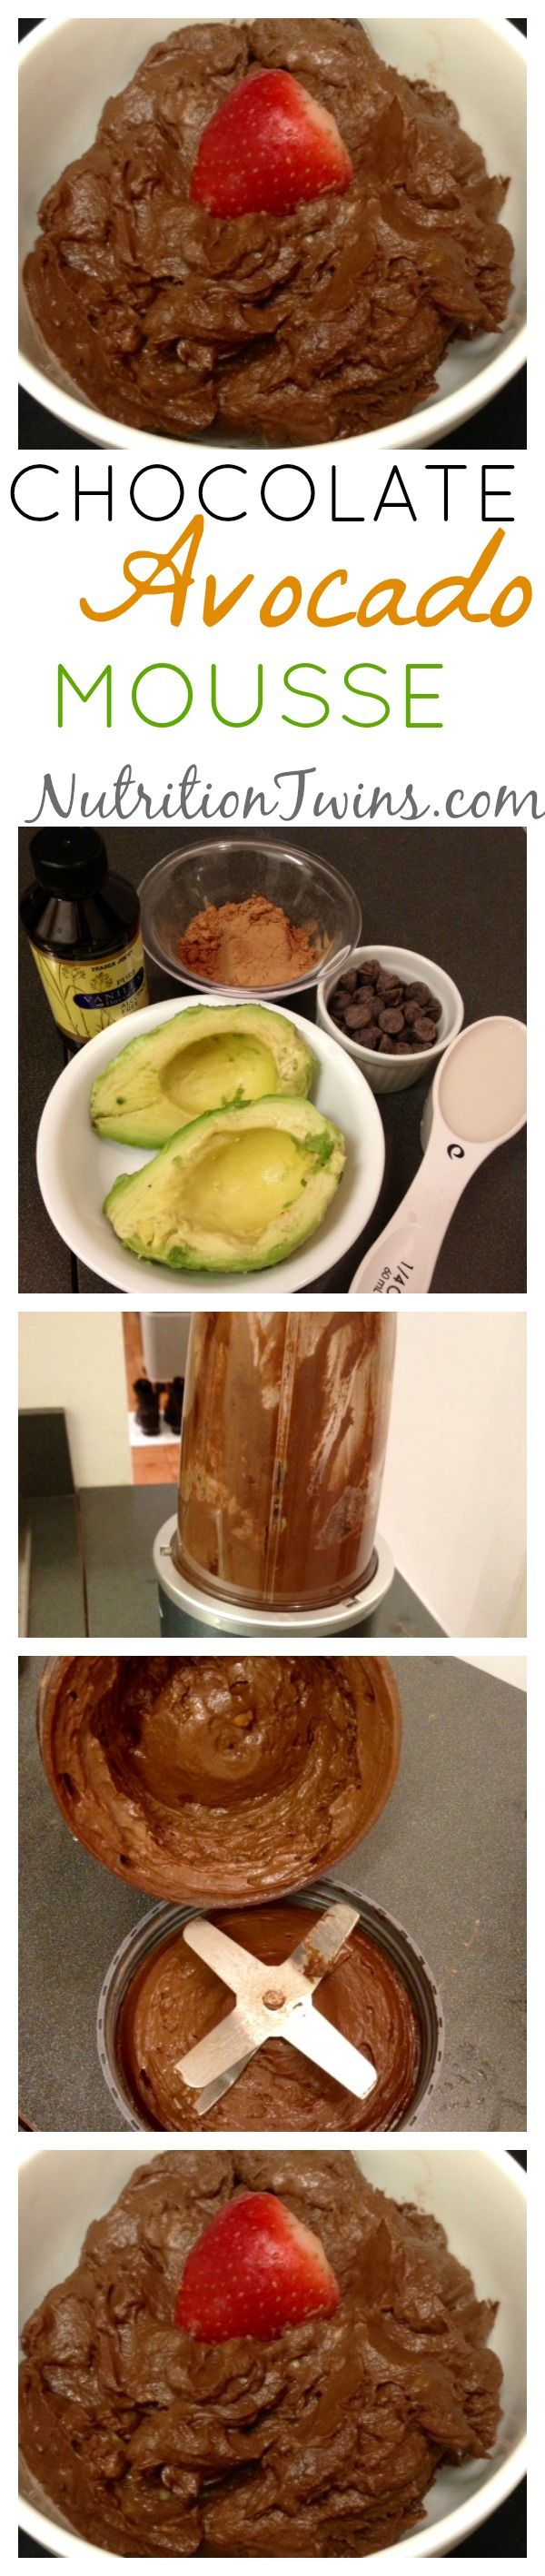 Chocolate Avocado Mousse | Only 87 Calories | Rich, Creamy & Healthy | Easy To Make | Vegan, Gluten-free, Dairy Free, Paleo | For MORE RECIPES please SIGN UP for our FREE NEWSLETTER www.NutritionTwins.com